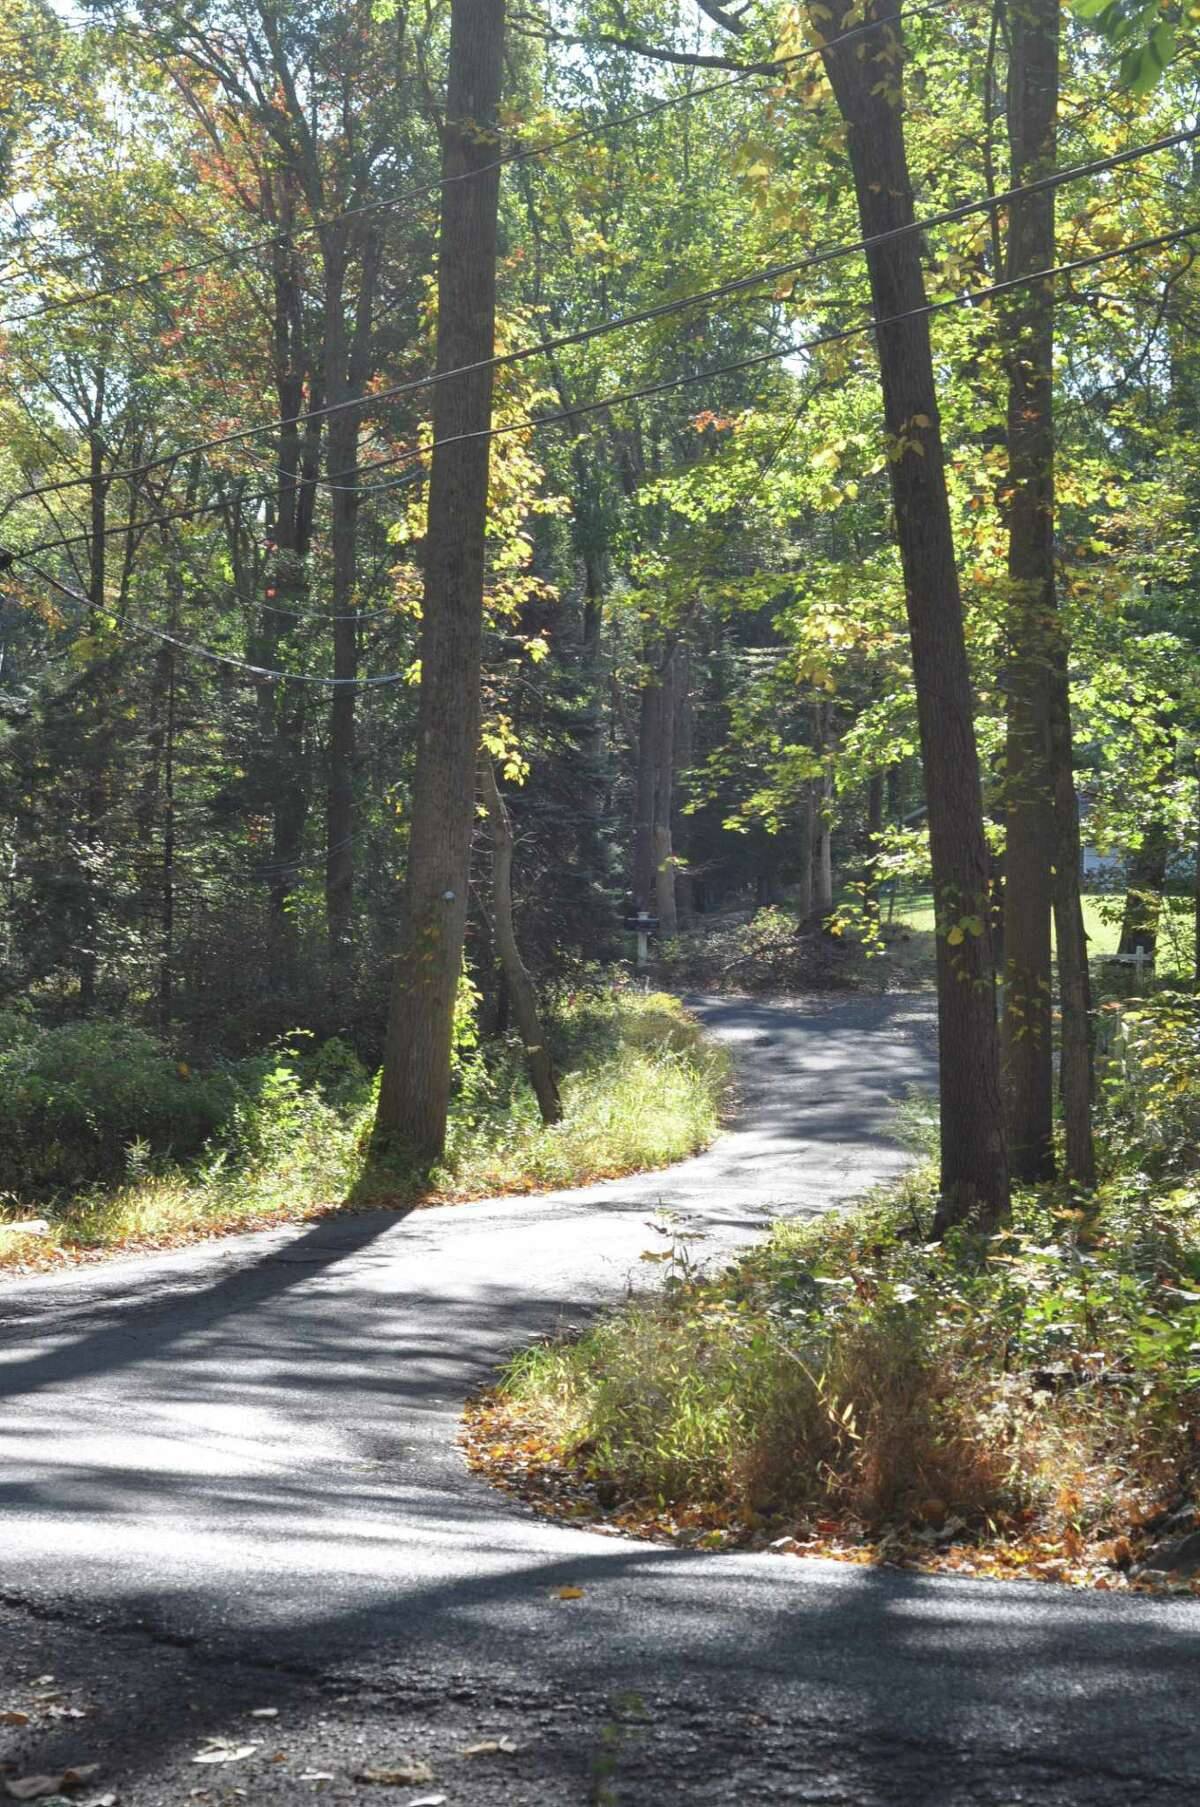 Ned's Mountain Road in Ridgefield curves through the wooded landscape, now without a lot of arrow signs identifying the turns.